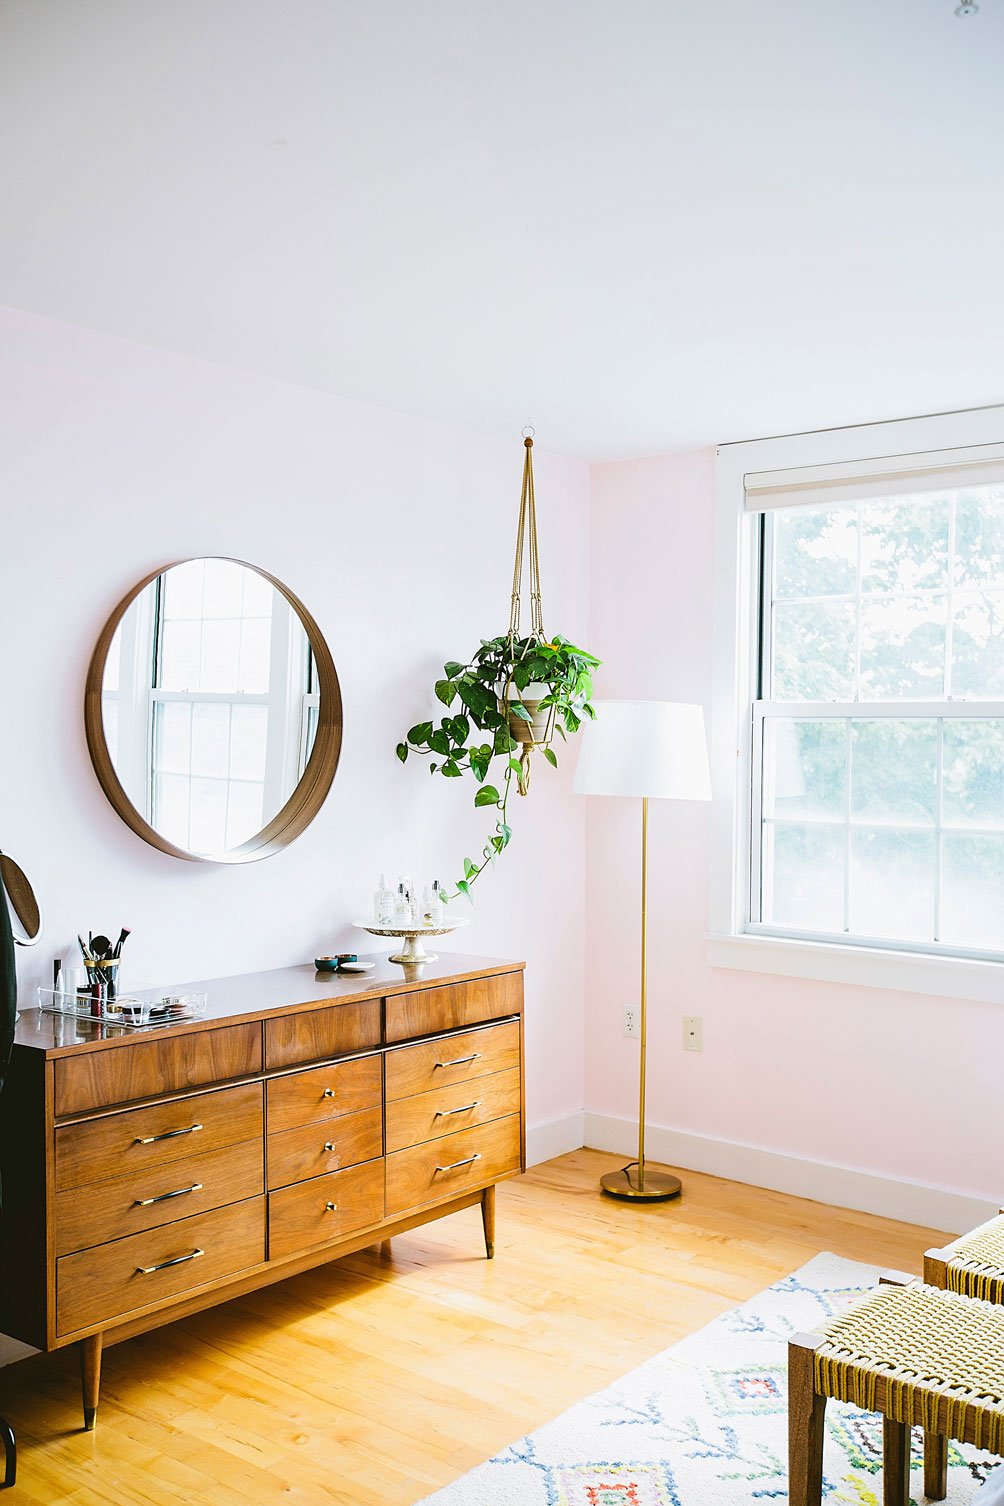 Leslie Musser of one brass fox shares her decor advice on decorating with houseplants